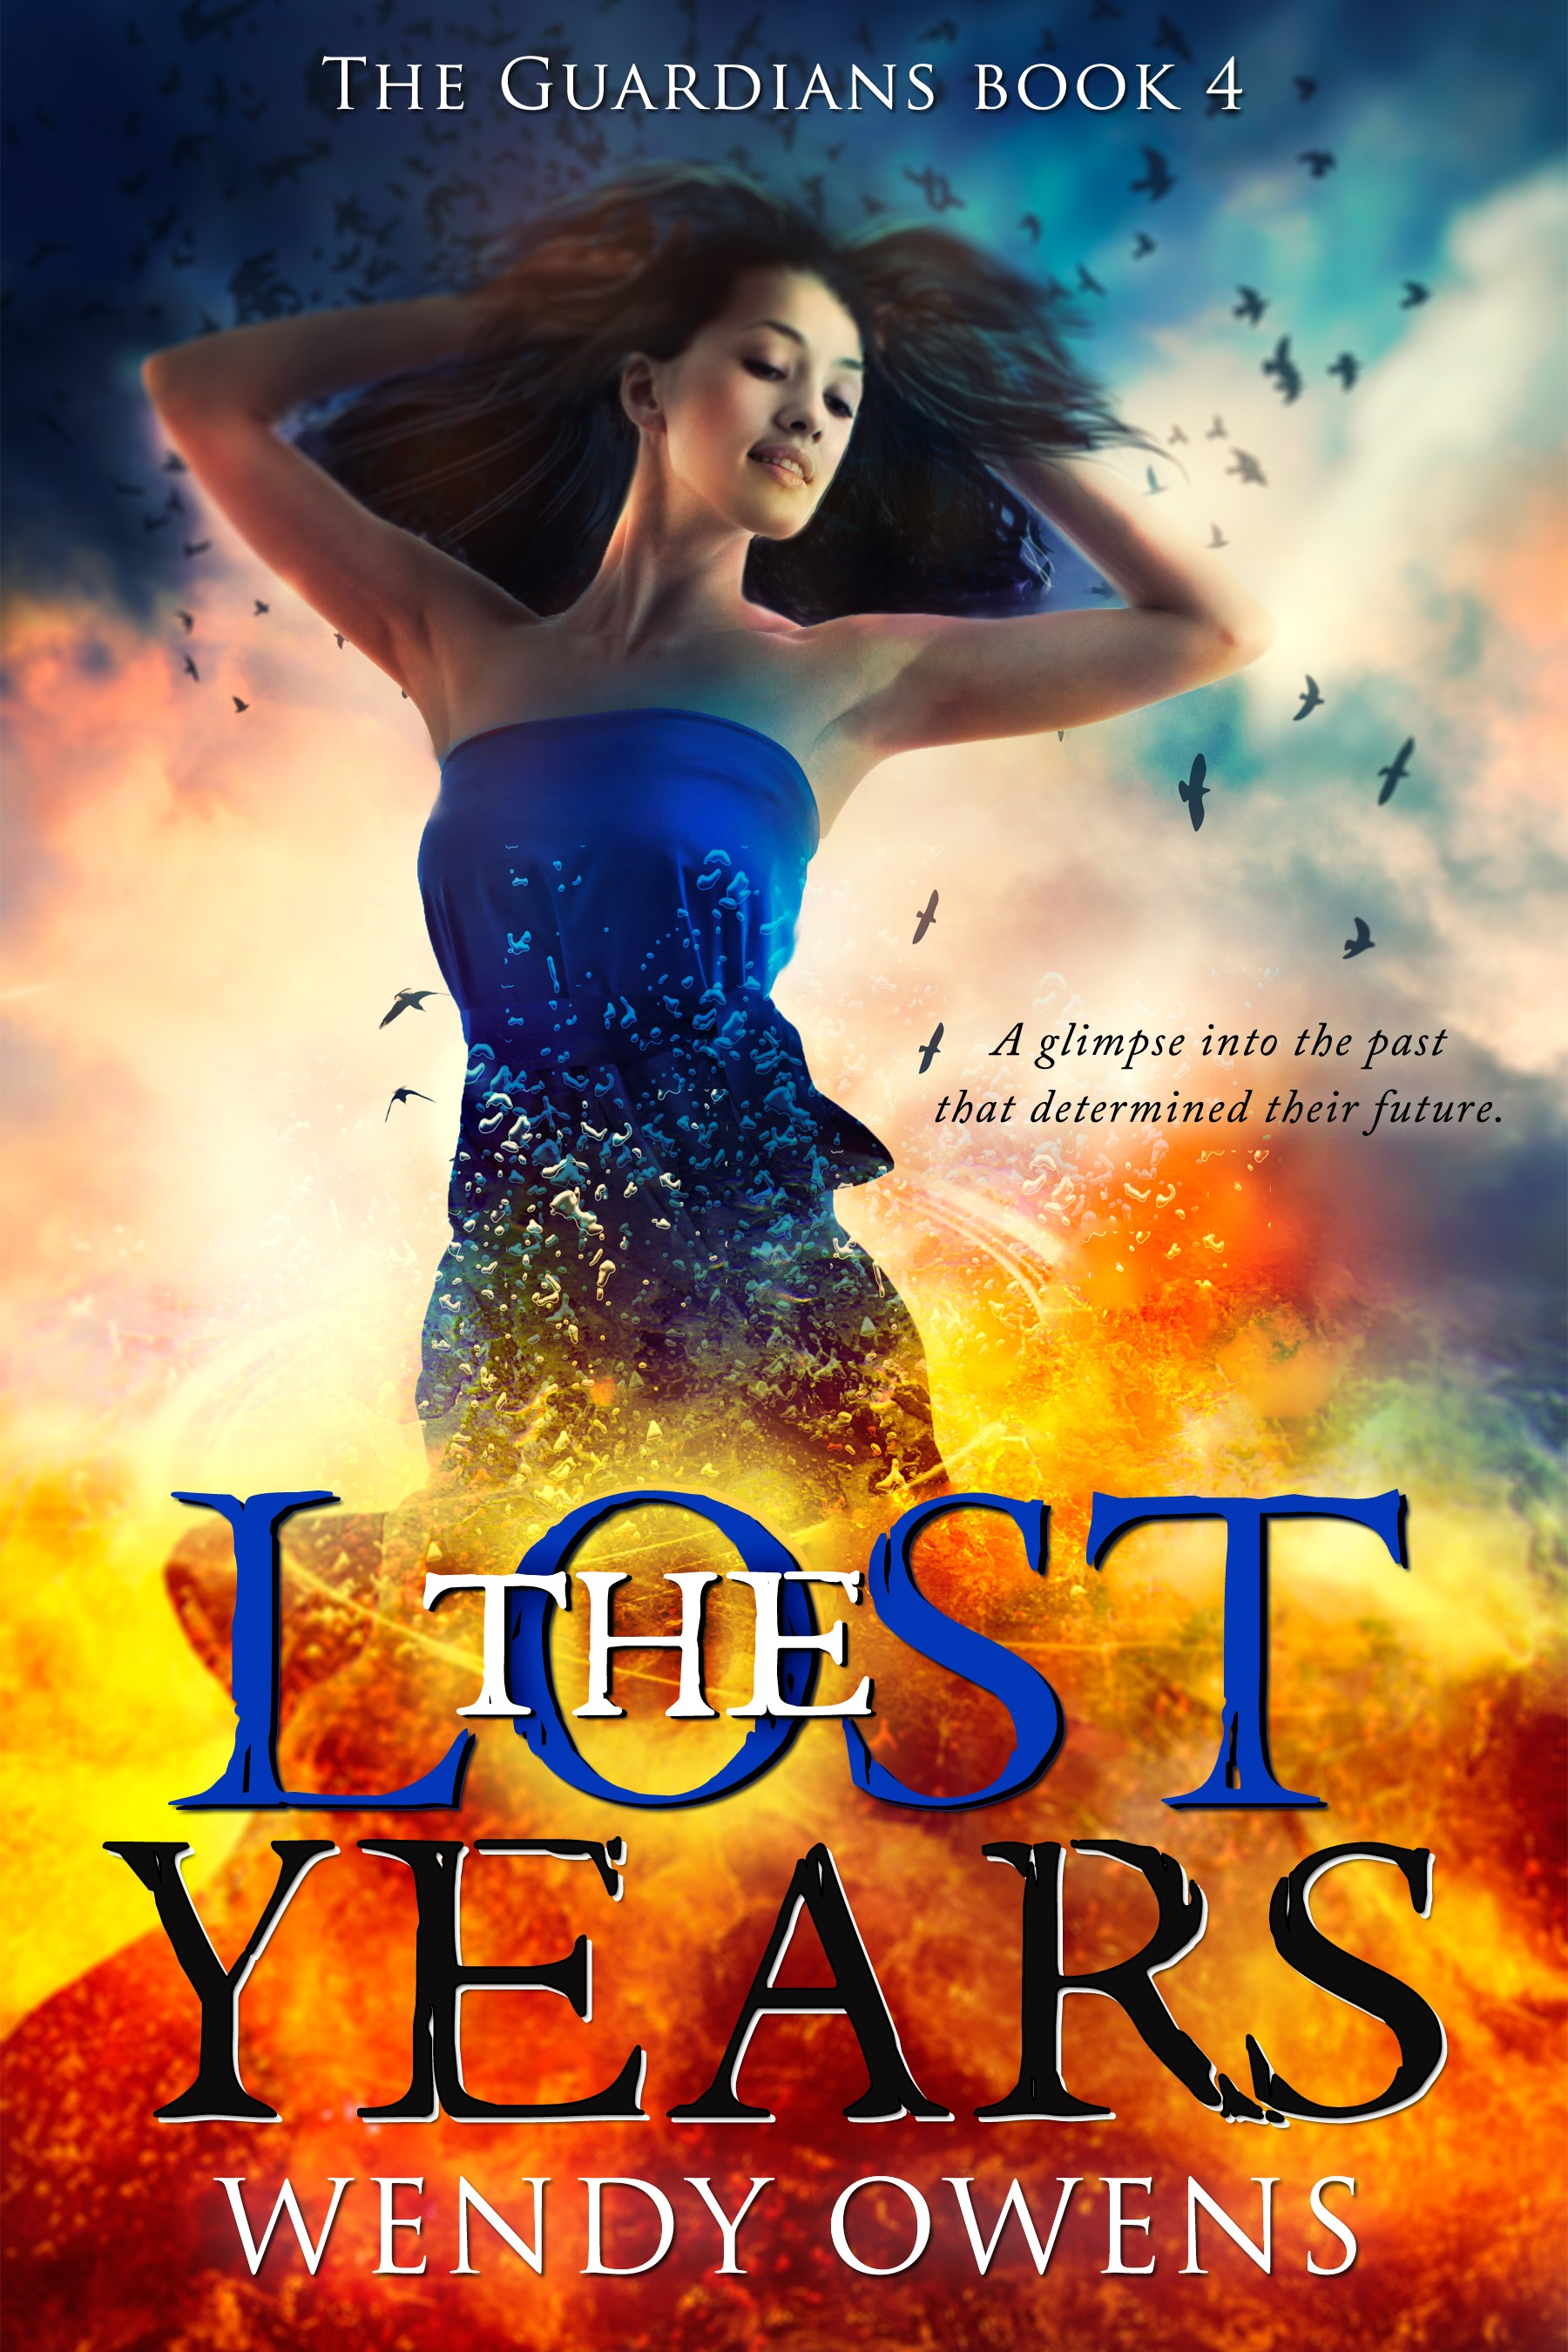 The Lost Years by Wendy Owens